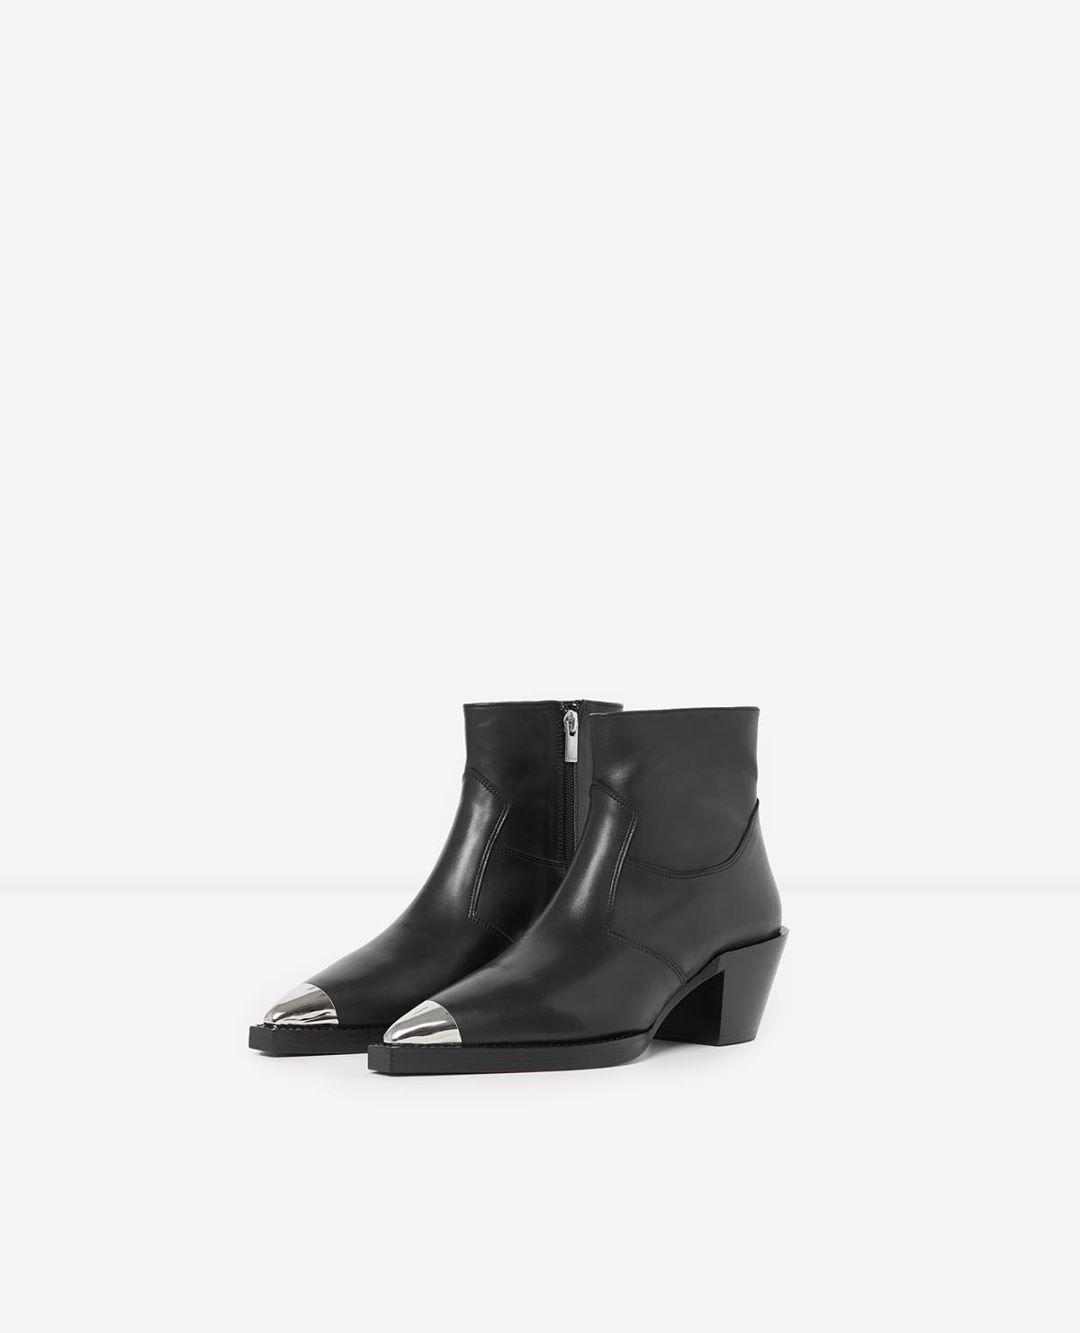 Heeled western- and rock-style boots